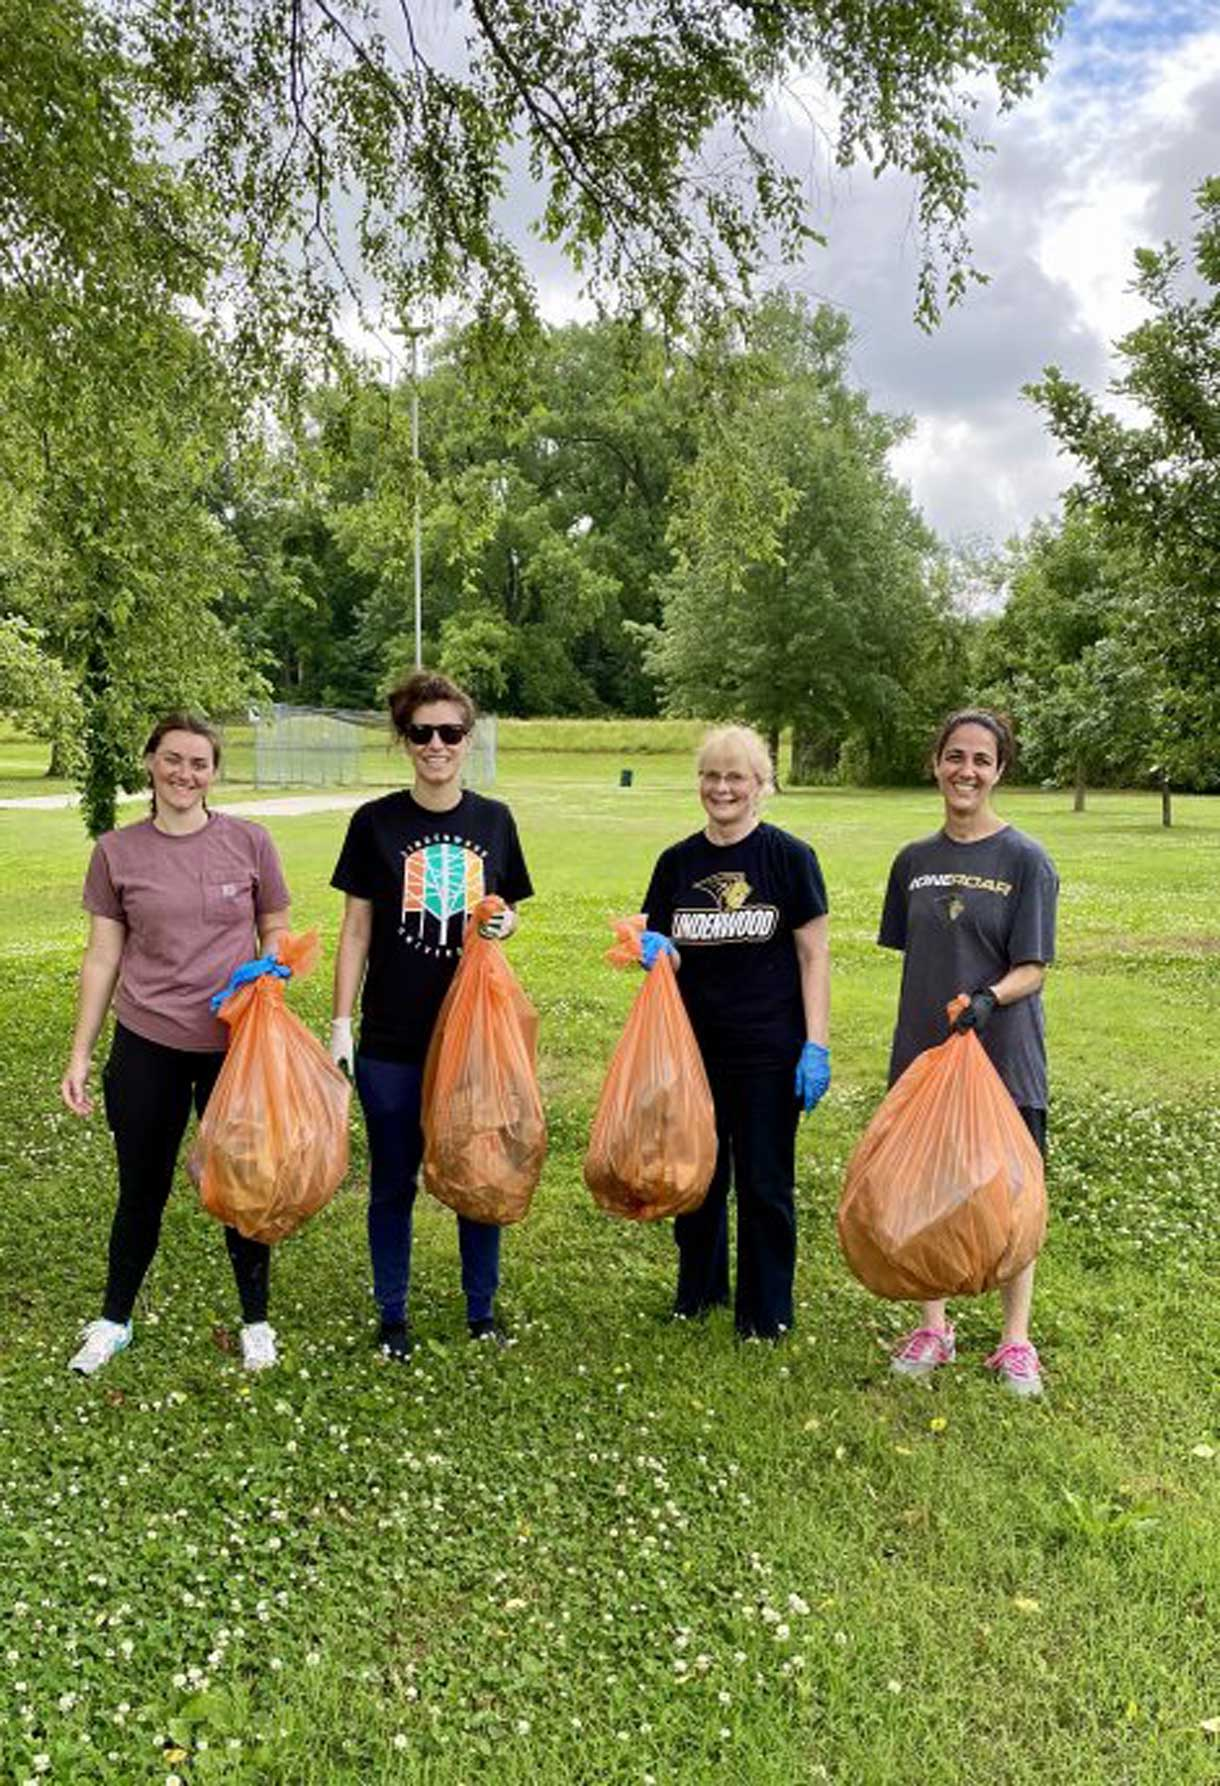 lindengiving crew cleaning up park